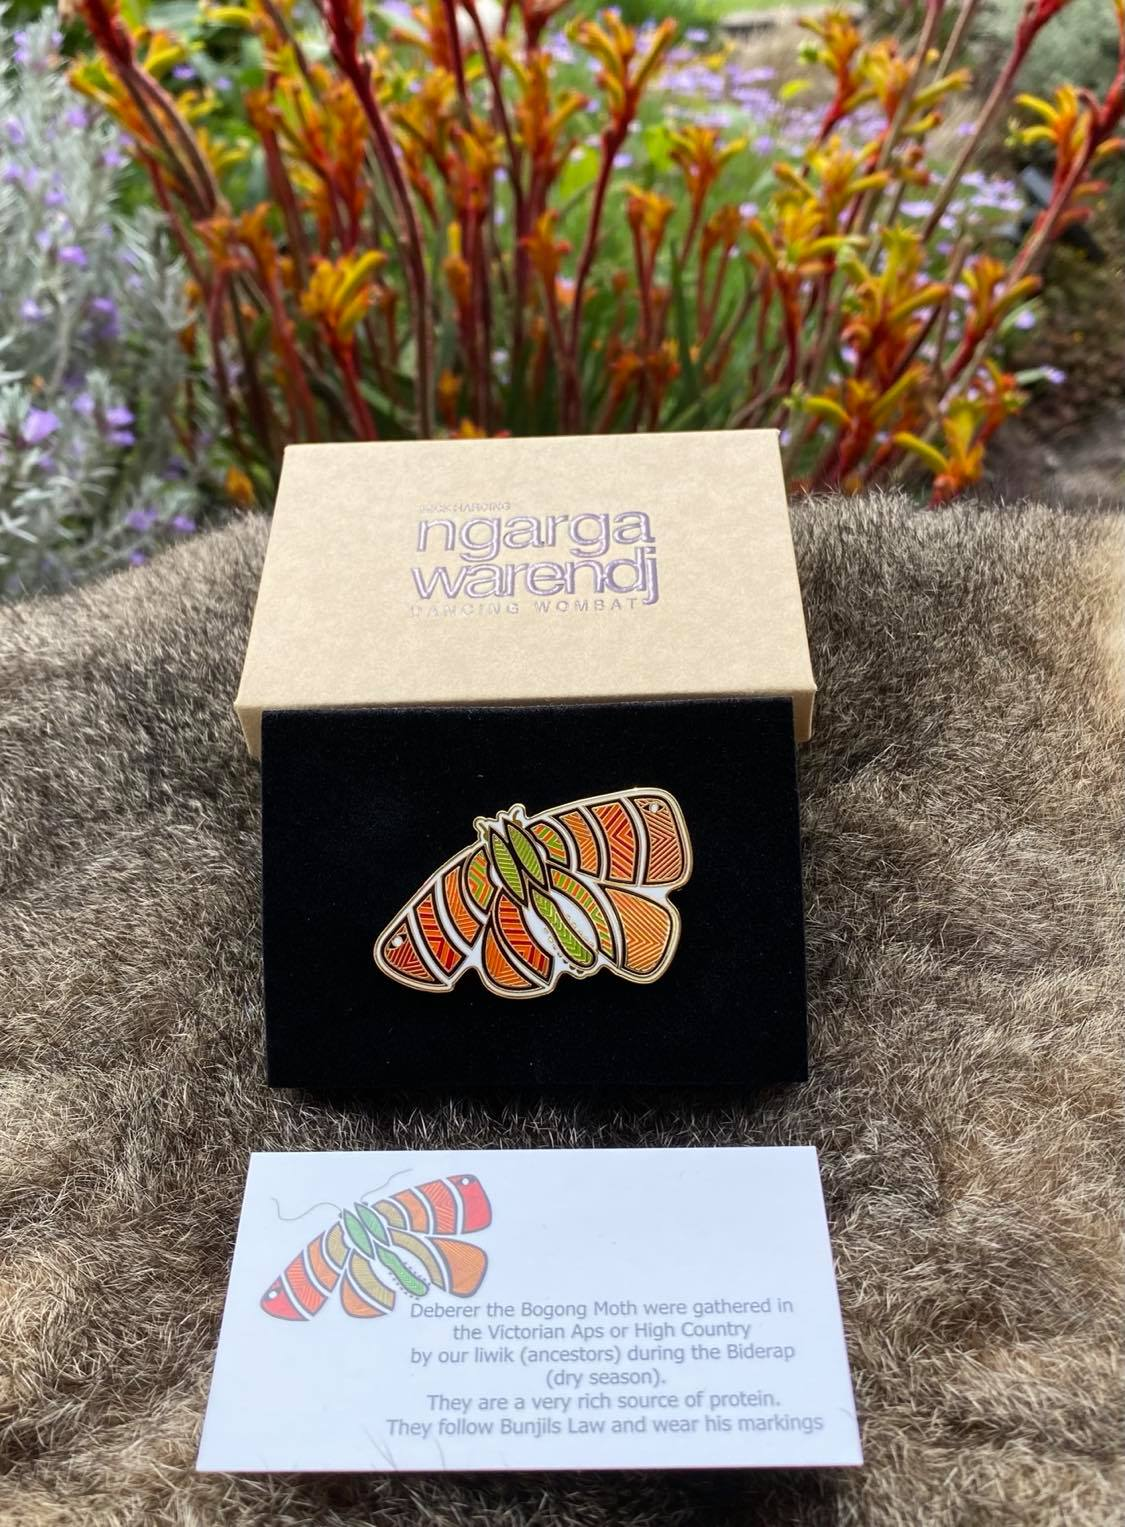 Add a finishing touch to any outfit, with this Lapel Pin featuring an Orange Bogong Moth design by Ngarga Warendj Dancing Wombat